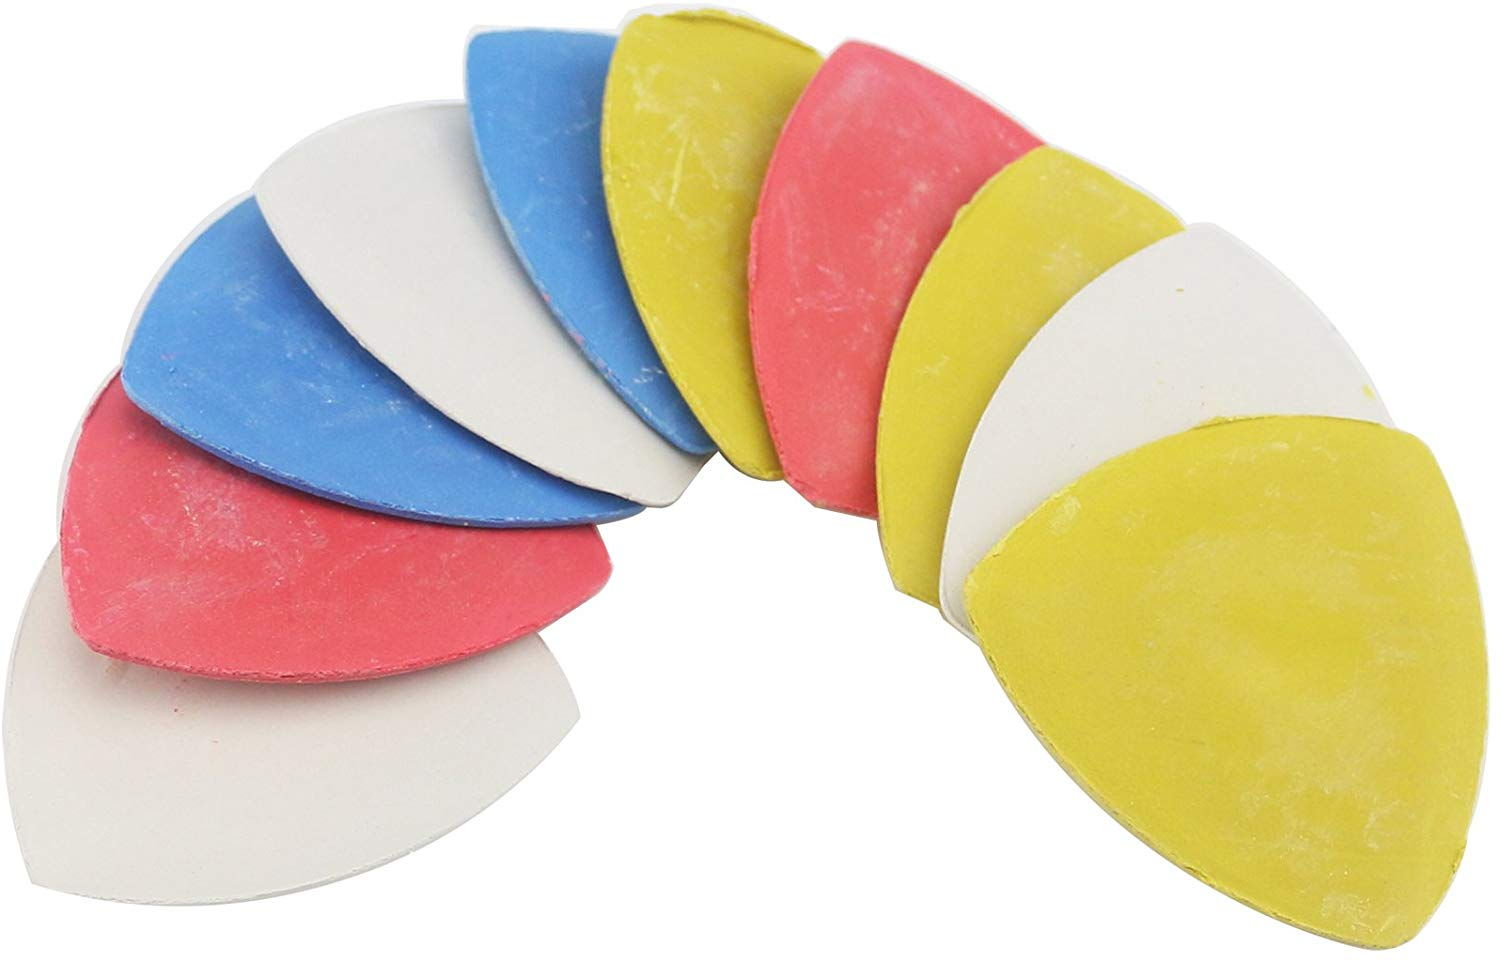 Ogrmar Professional Tailors Chalk - Chalks for Tailors